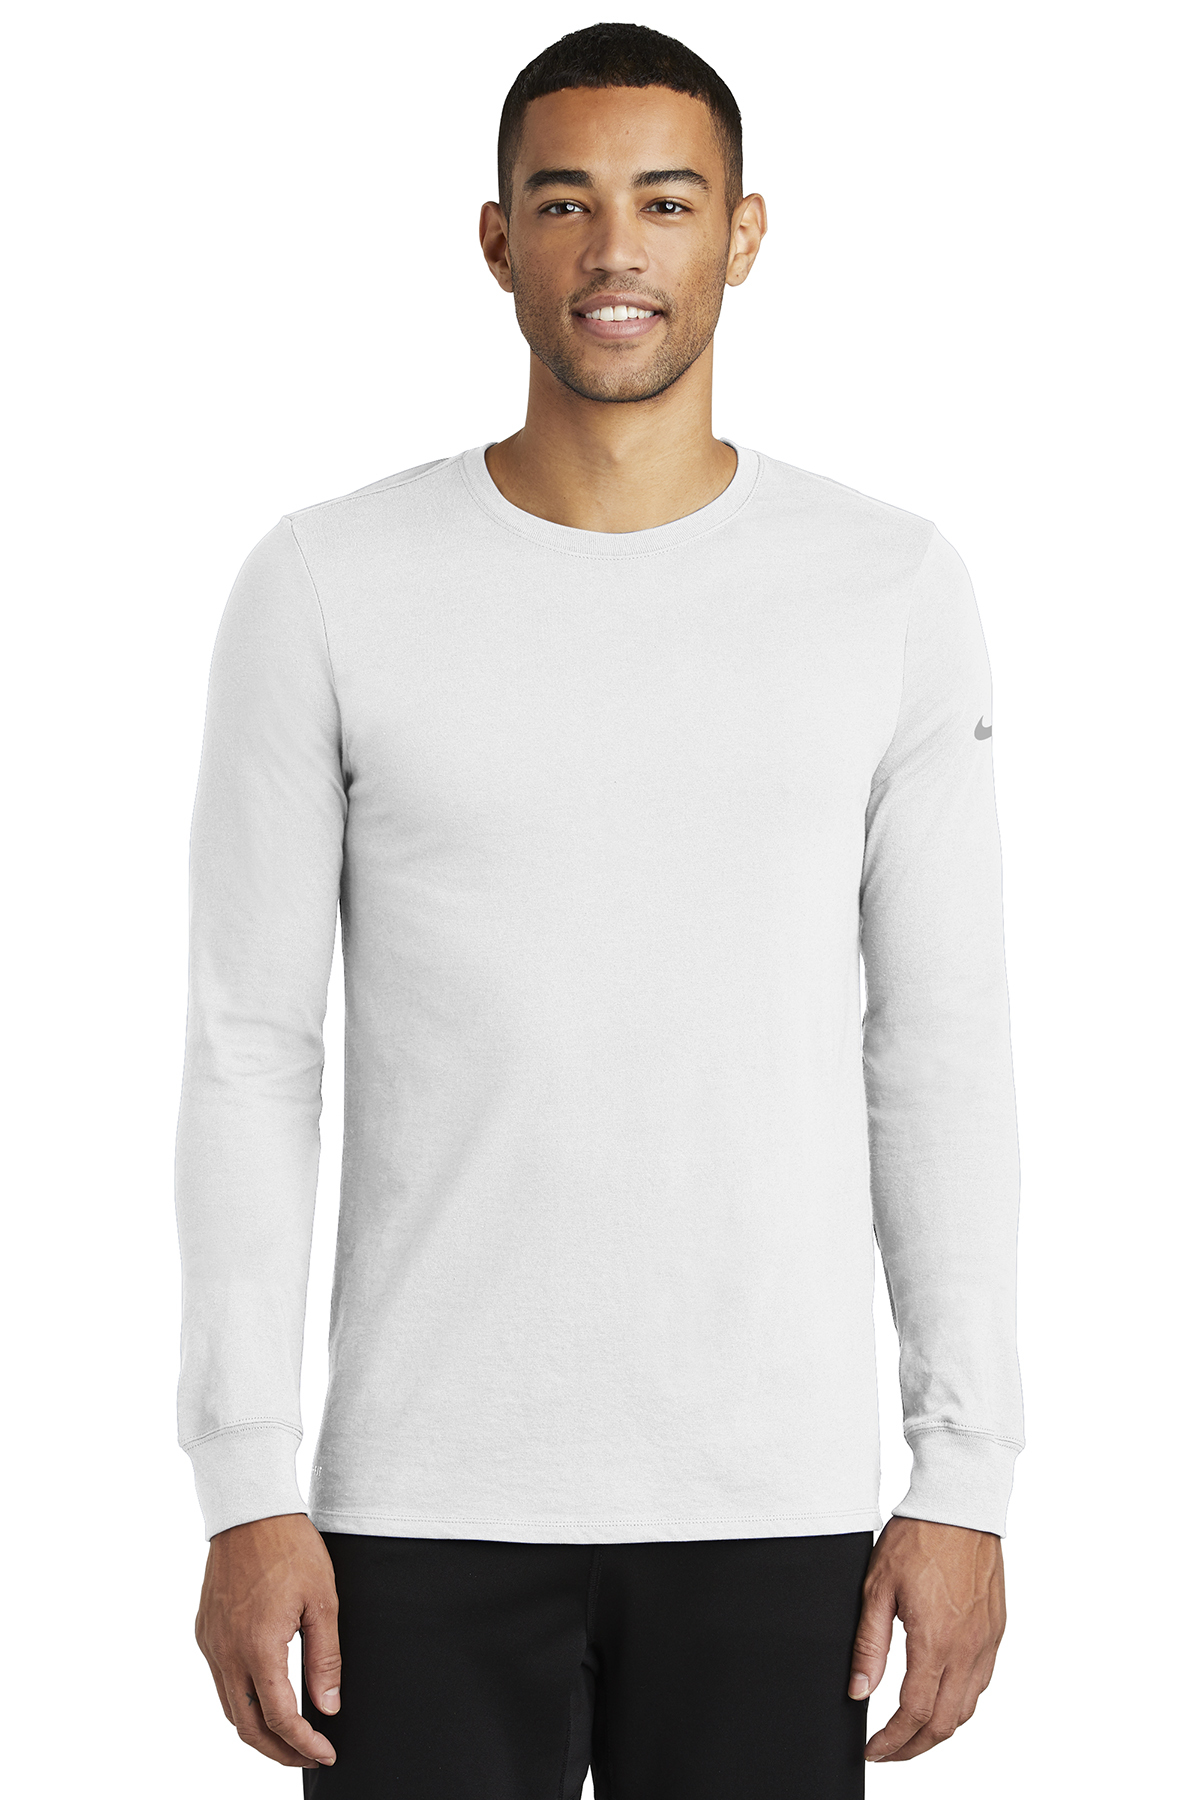 c391ae255d1 Nike Dri-FIT Cotton Poly Long Sleeve Tee